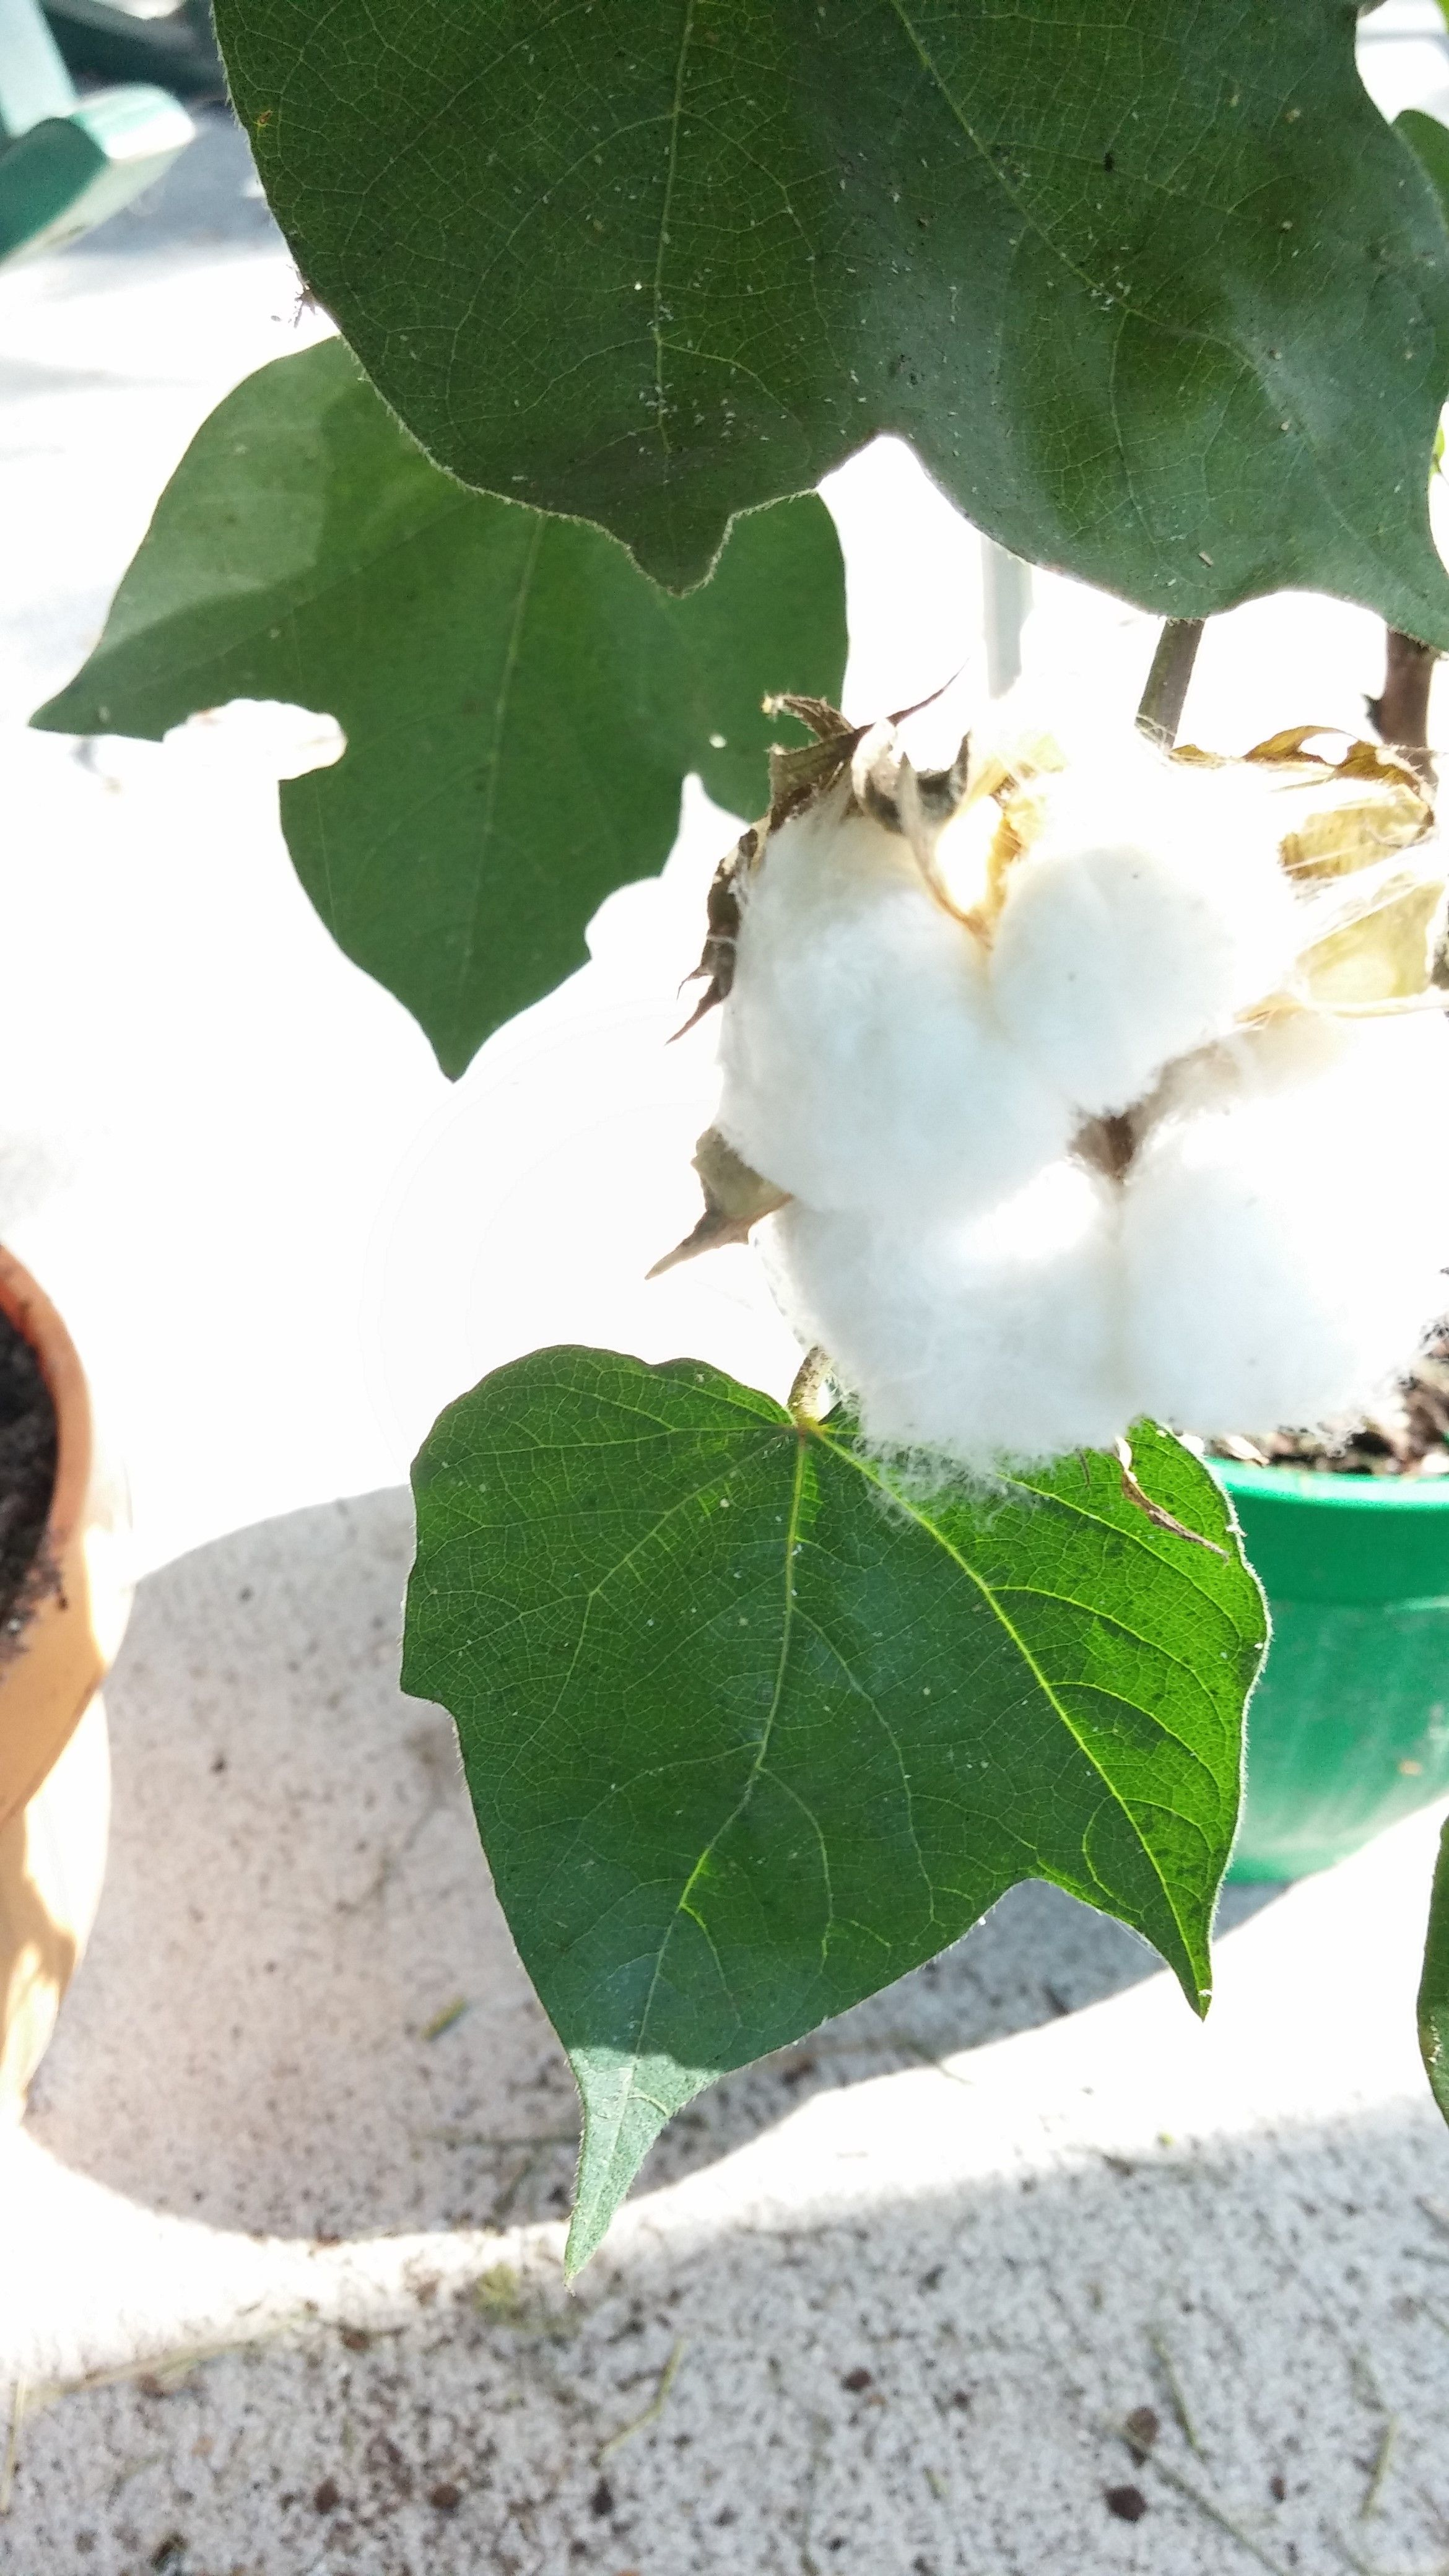 Cotton plant which was grown in the school garden lake